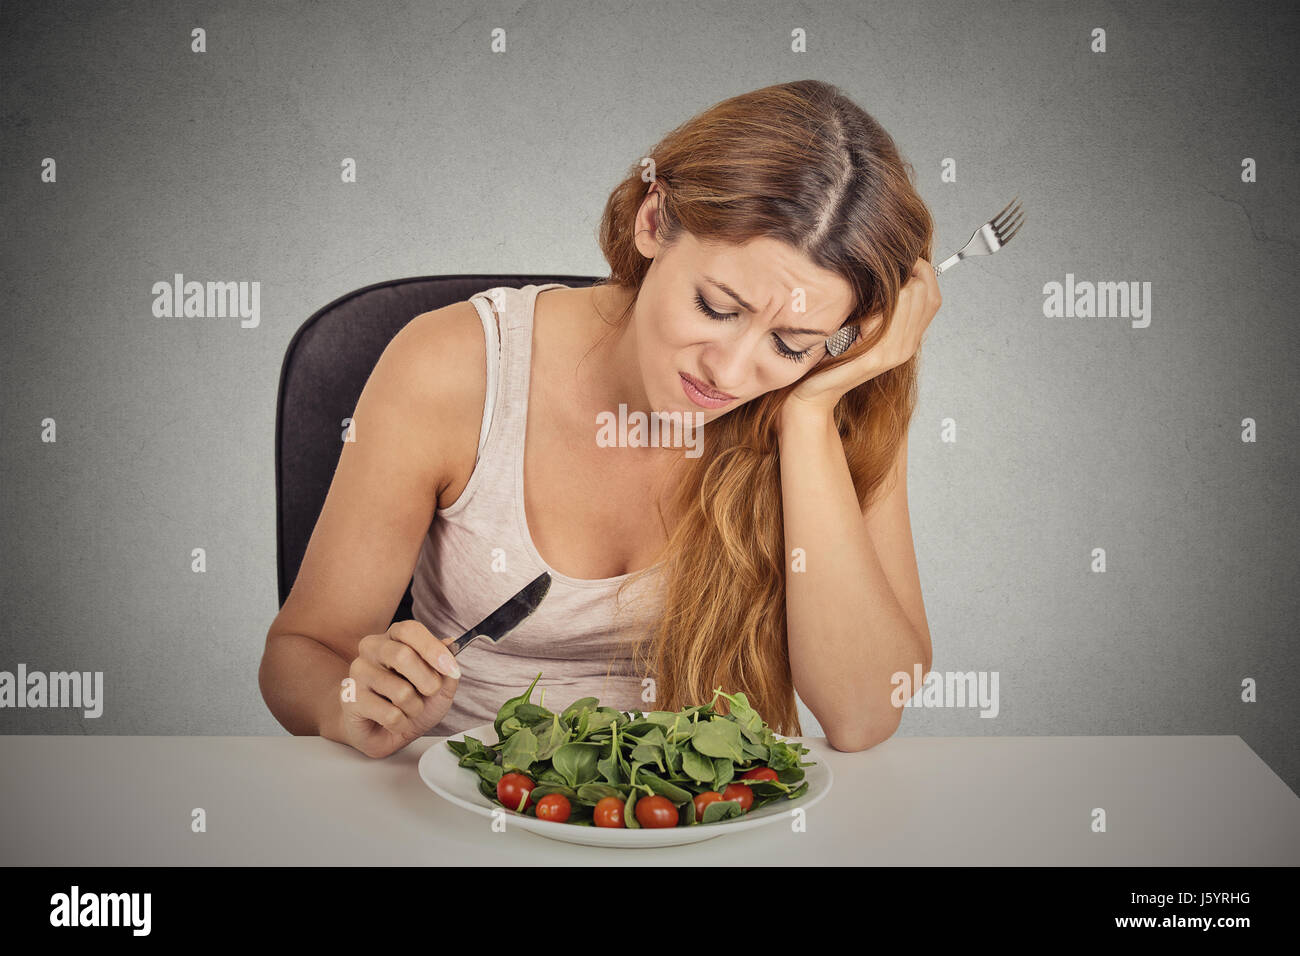 sad displeased young woman eating salad isolated grey wall background. Negative human face expression emotion. - Stock Image